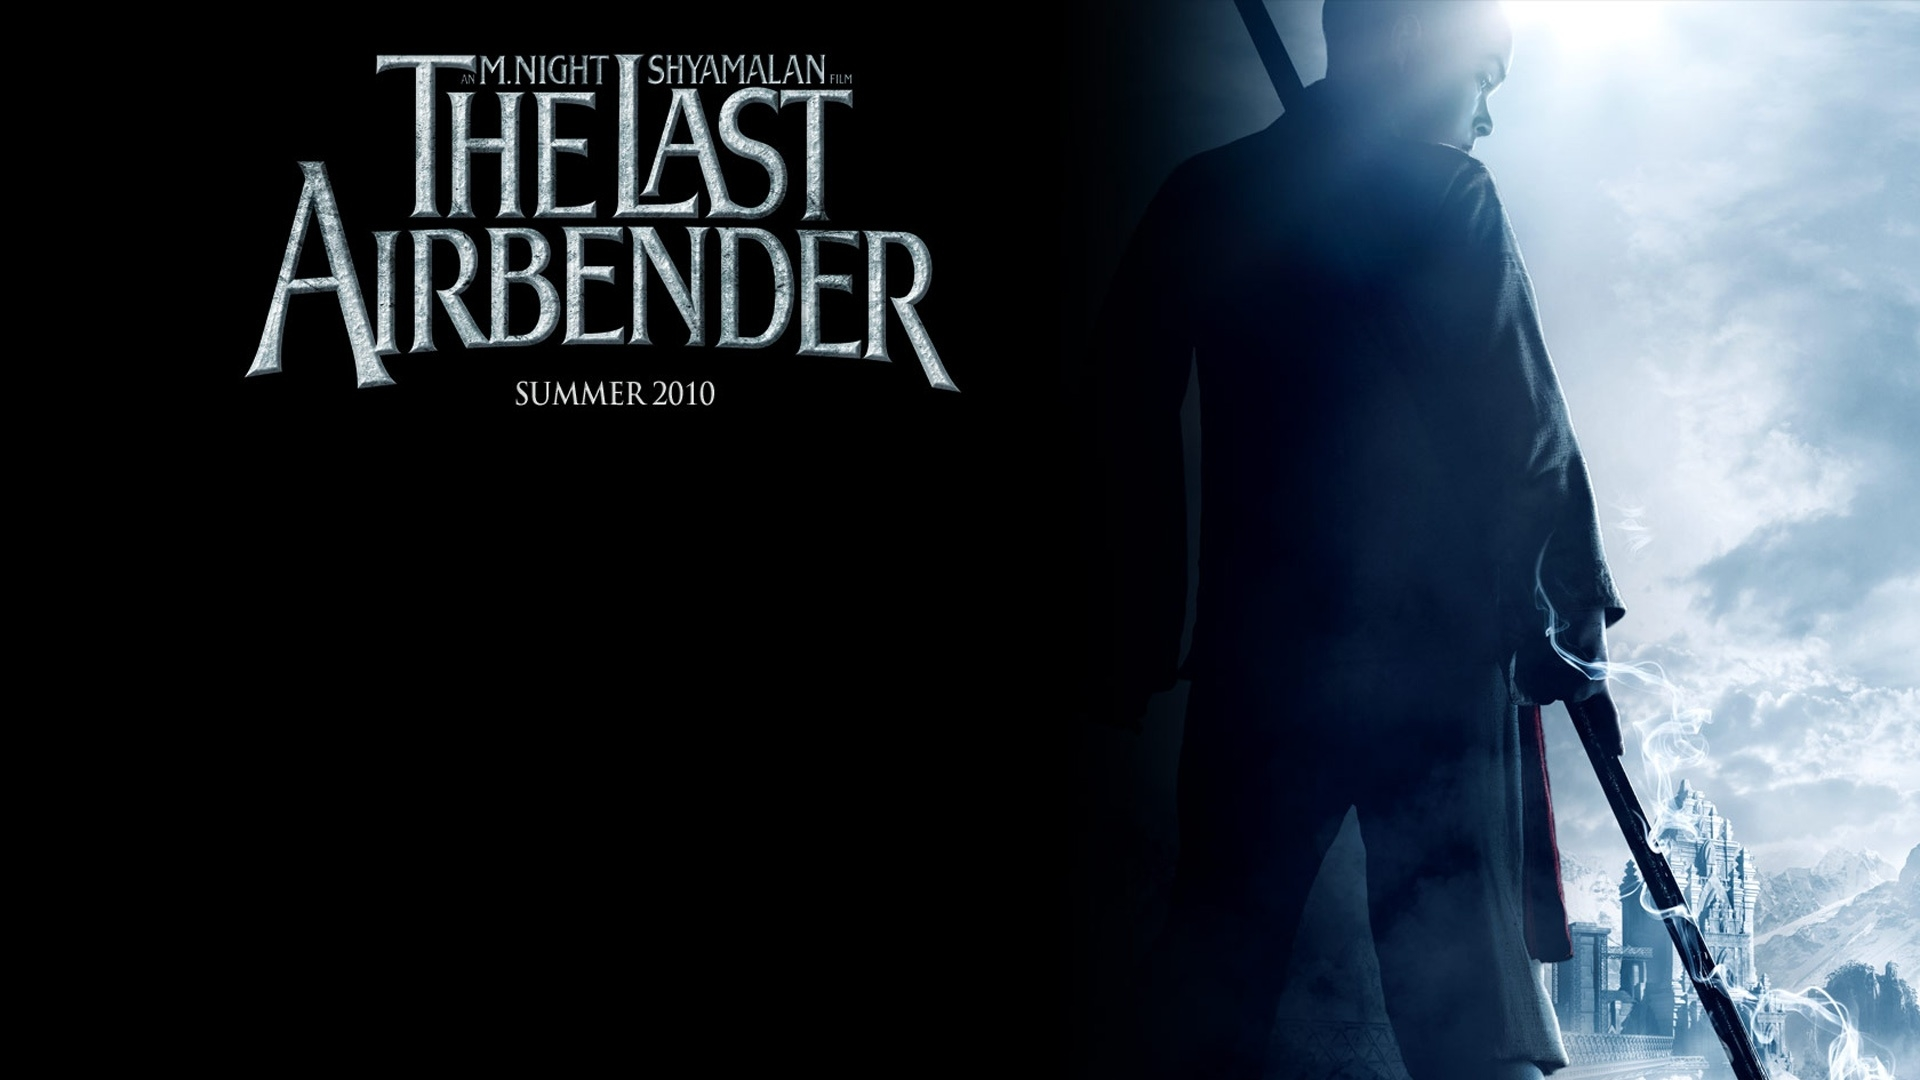 The Last Airbender   High Definition Wallpapers   HD wallpapers 1920x1080